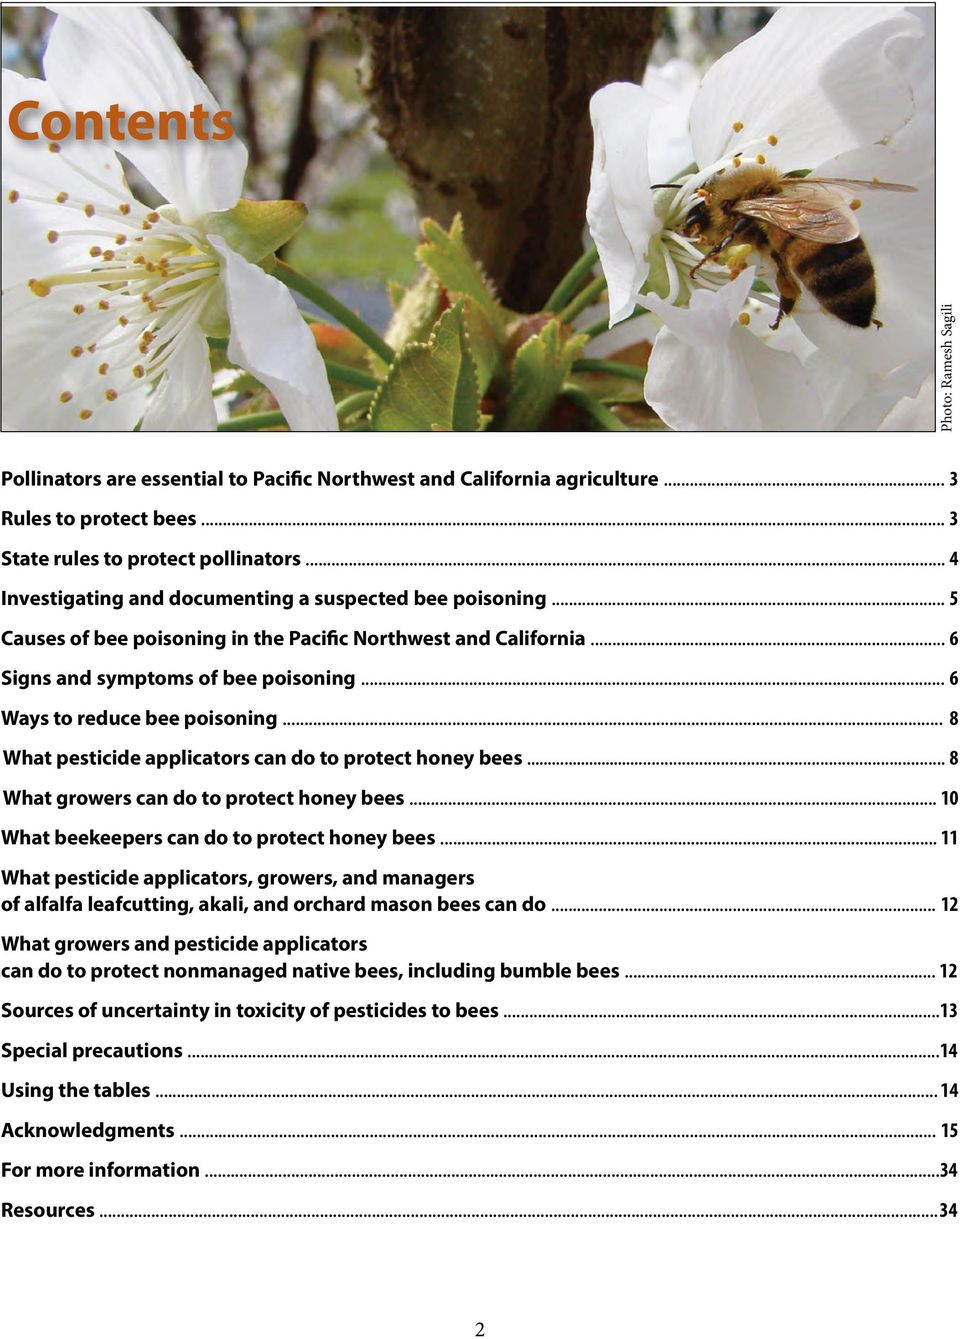 .. 6 Ways to reduce bee poisoning... 8 What pesticide applicators can do to protect honey bees... 8 What growers can do to protect honey bees... 10 What beekeepers can do to protect honey bees.